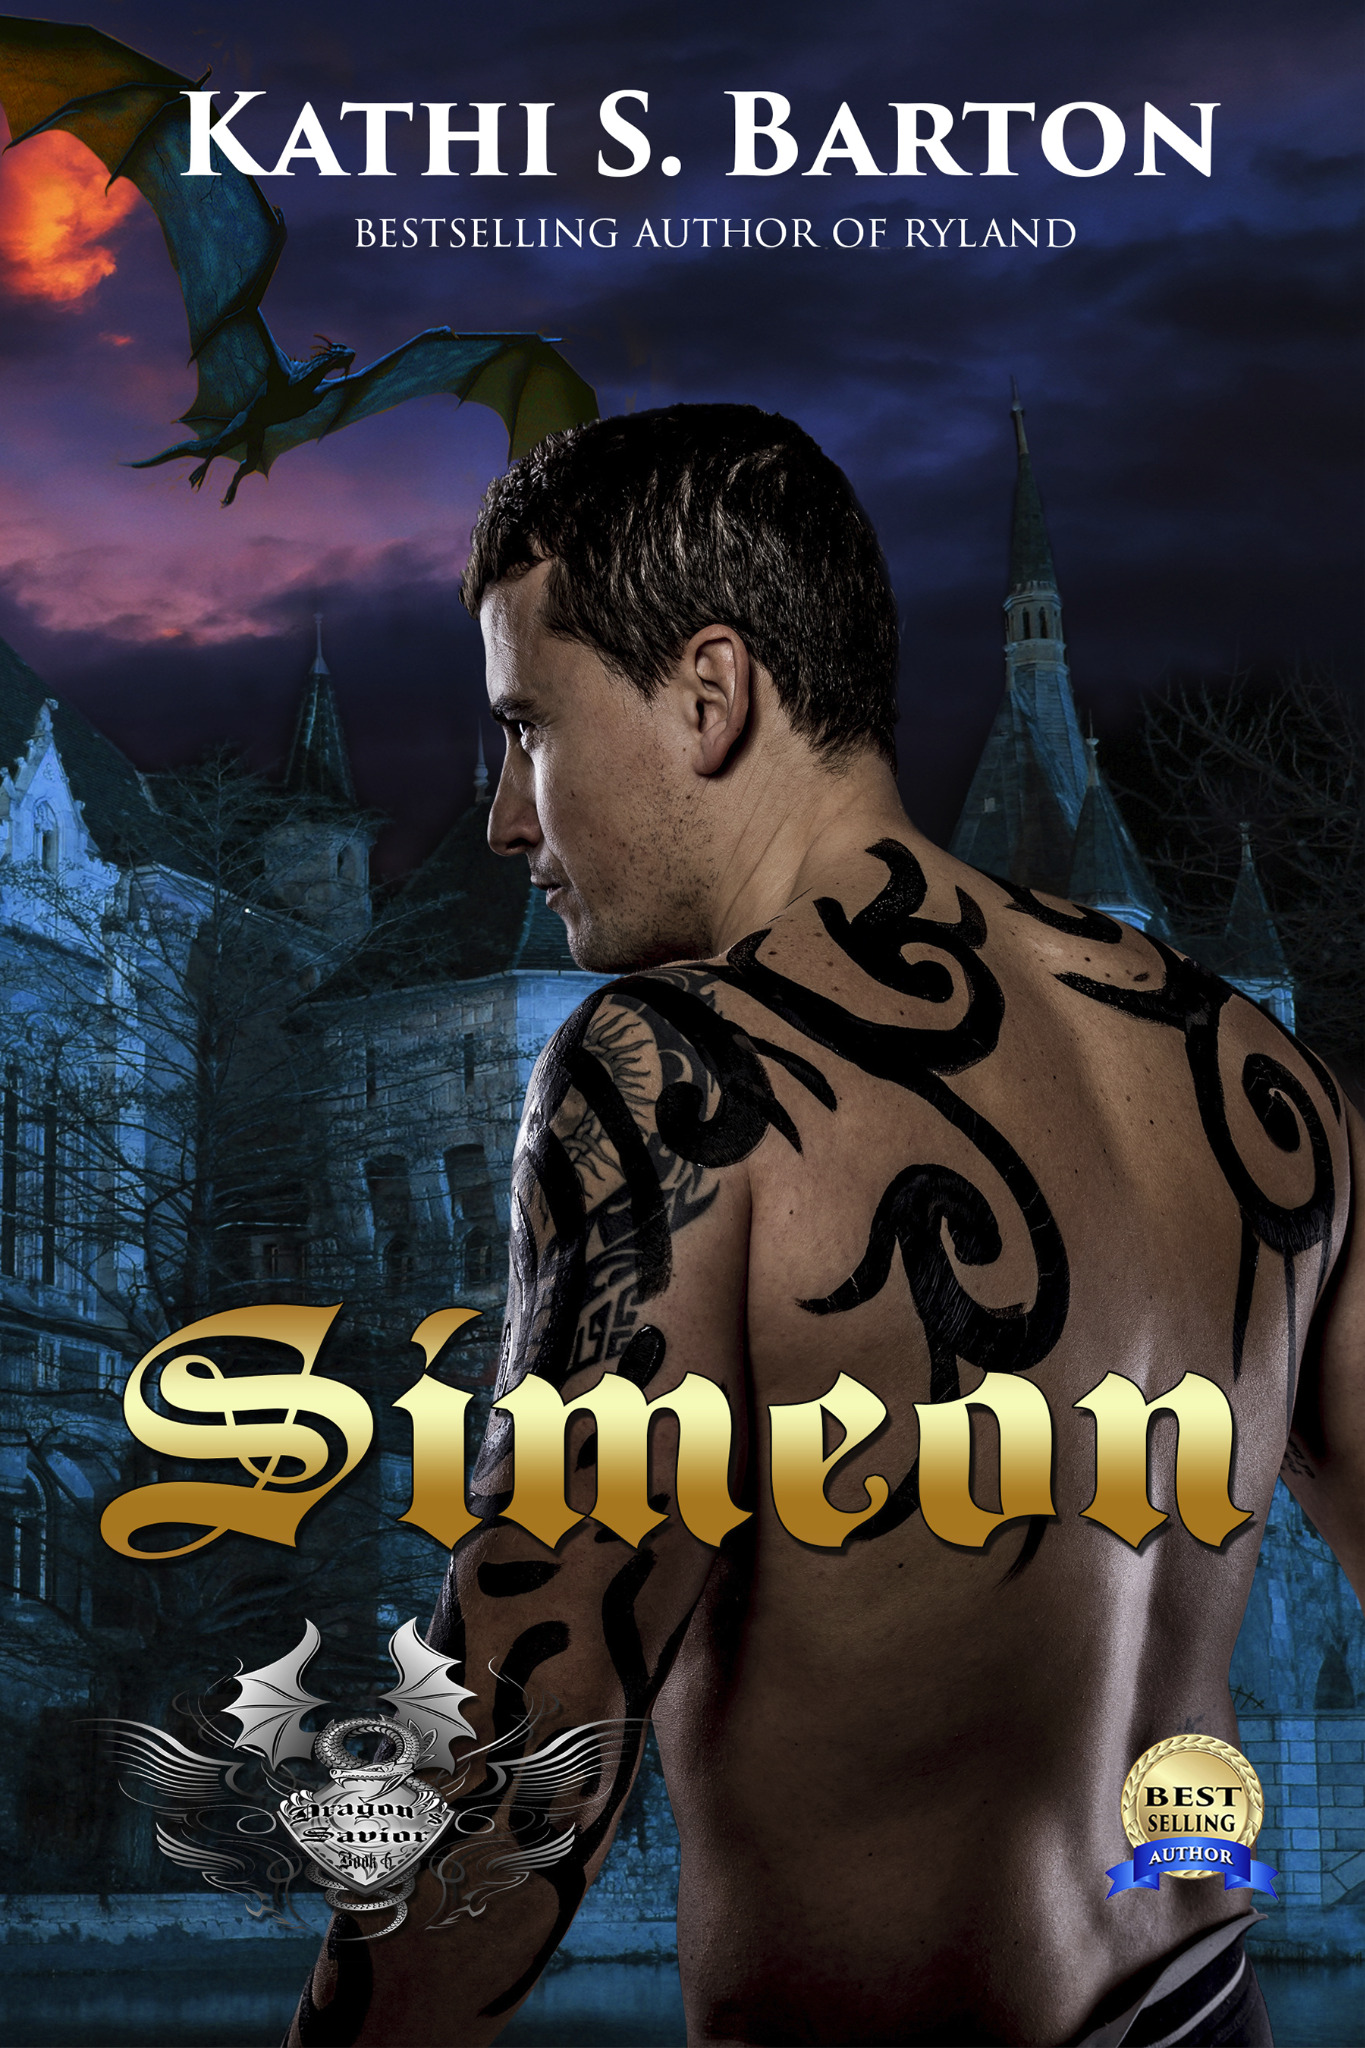 Simeon - Dragon's Savior Book 6